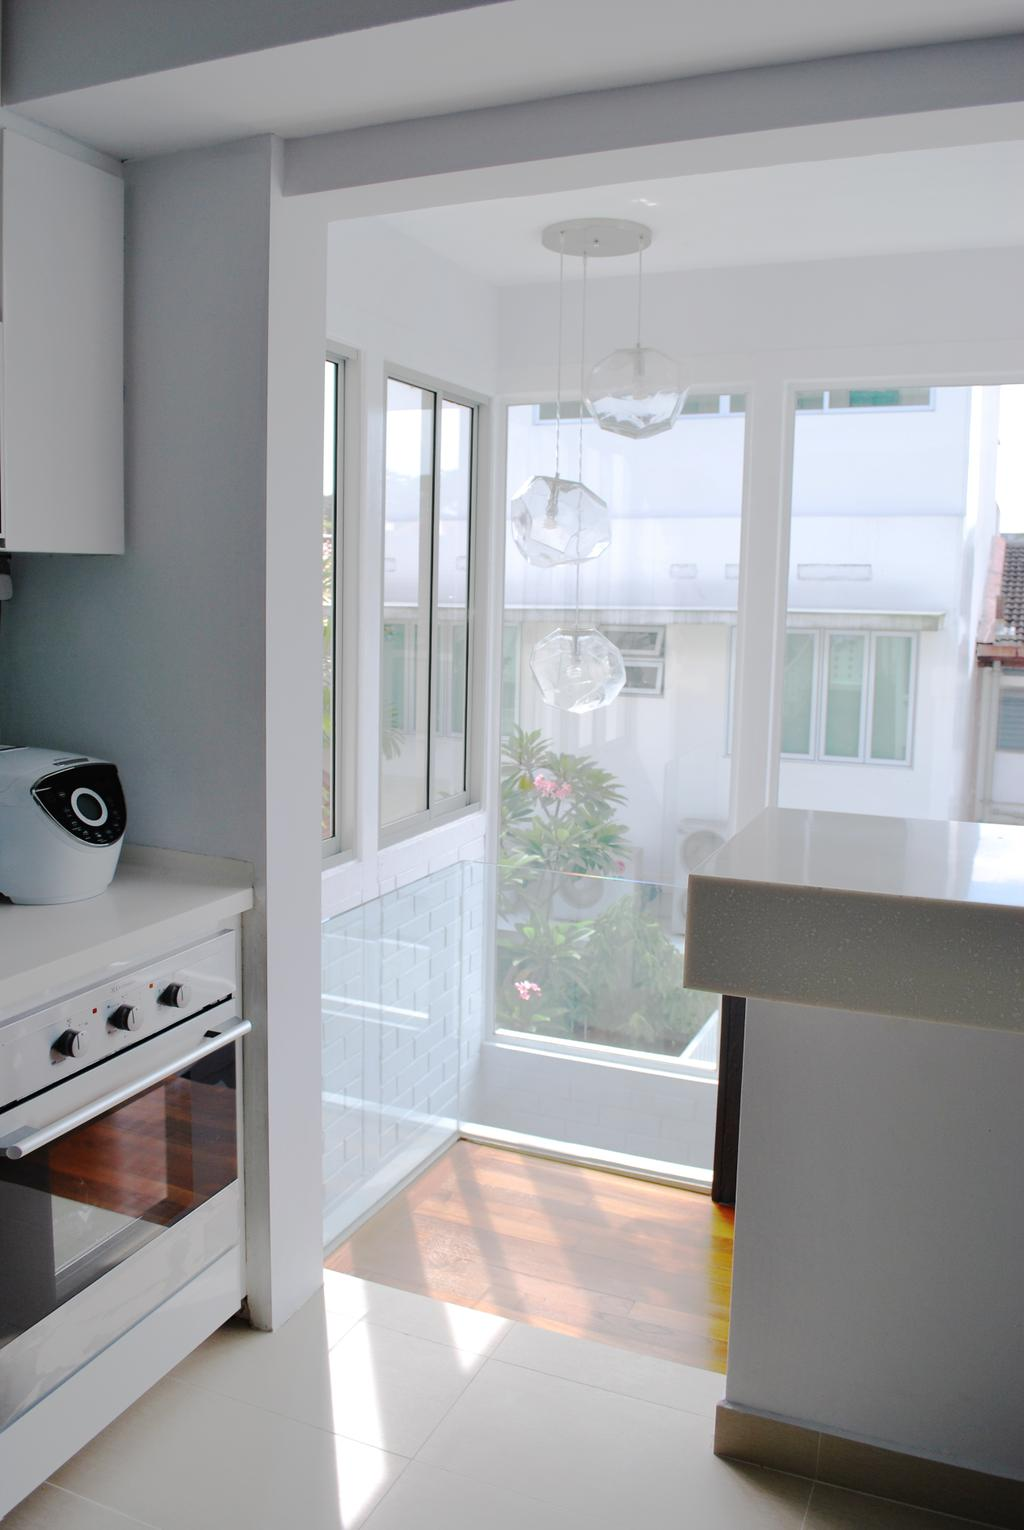 Transitional, Landed, Kitchen, Tagore Avenue, Architect, Czarl Architects